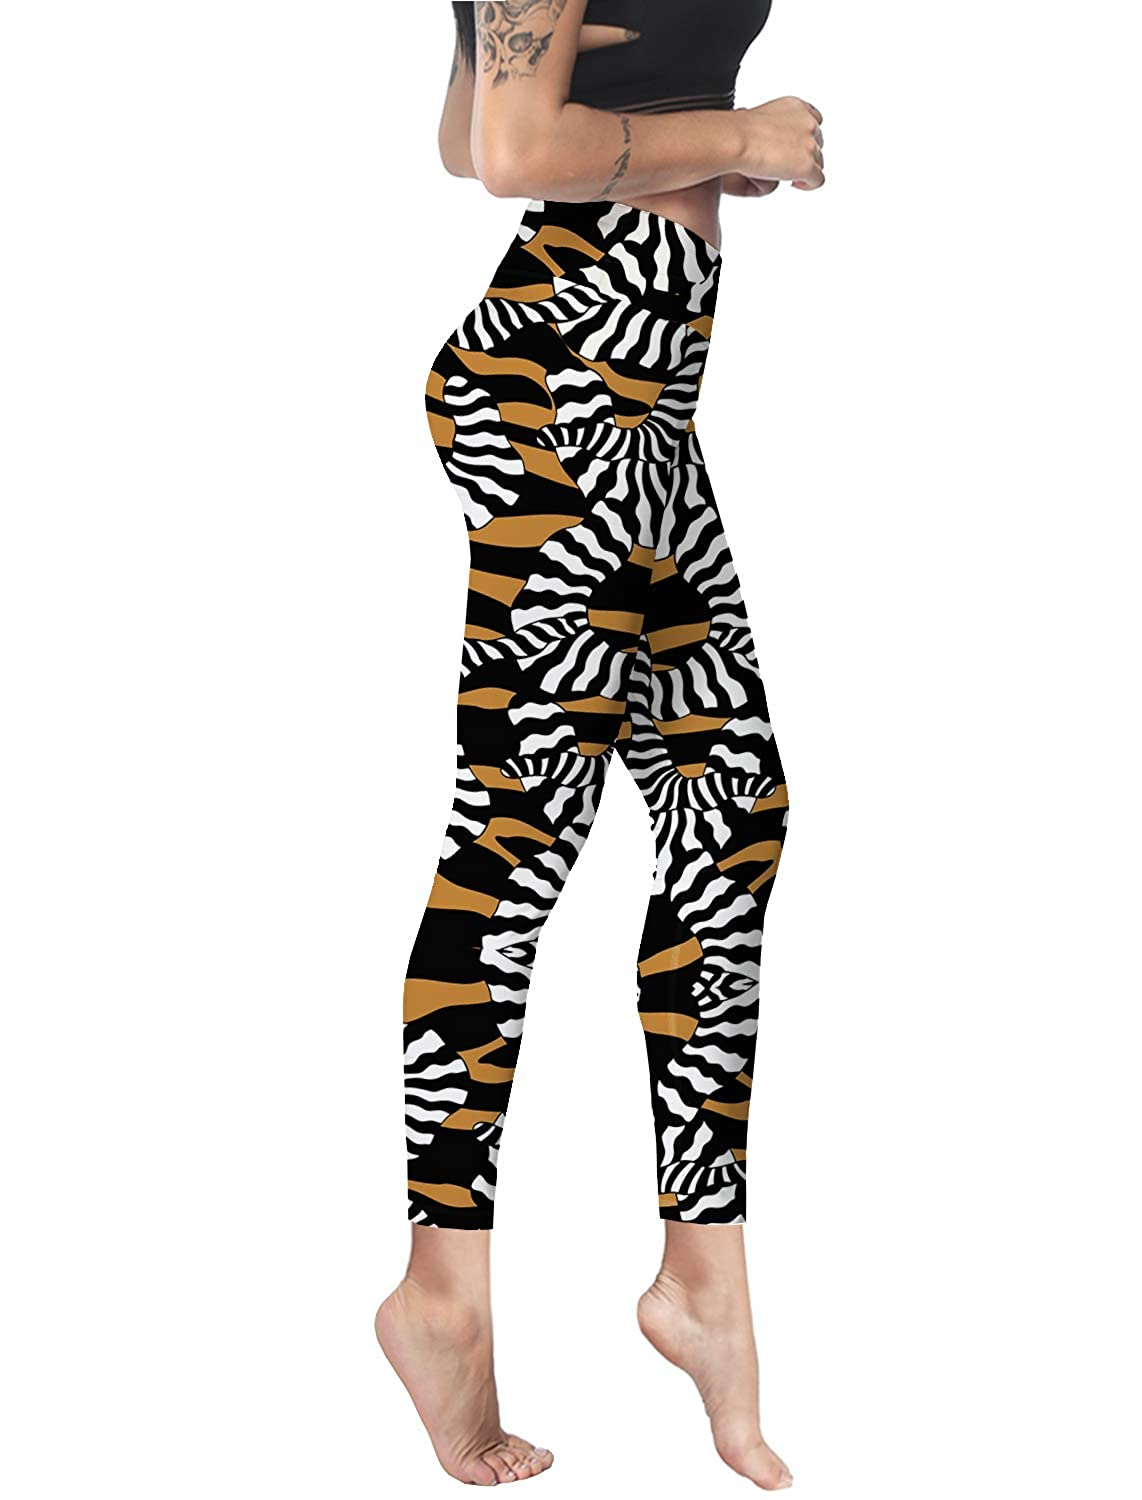 Women Stretch High Waist Yoga Pants Running Tights Animal Tiger Capris Compression Workout Leggings